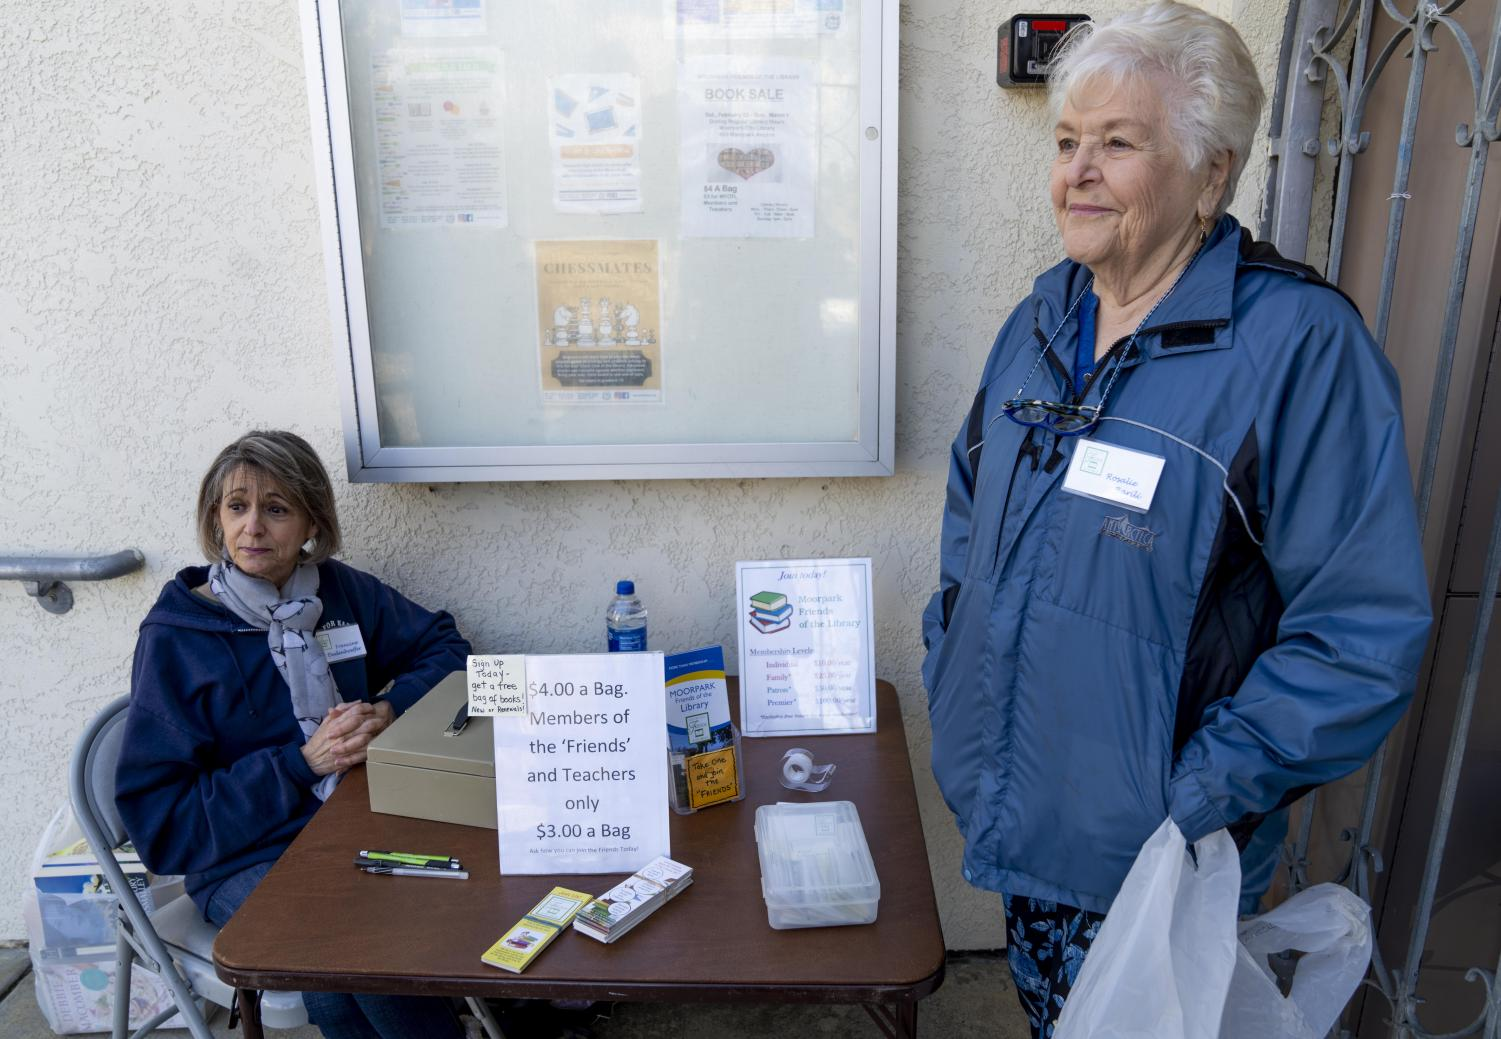 Francine Dudenhoeffer, left, alongside Rosalie Barili, talk about their history in the library during the book sale hosted by the Friends of the Library on Saturday, Feb. 22.